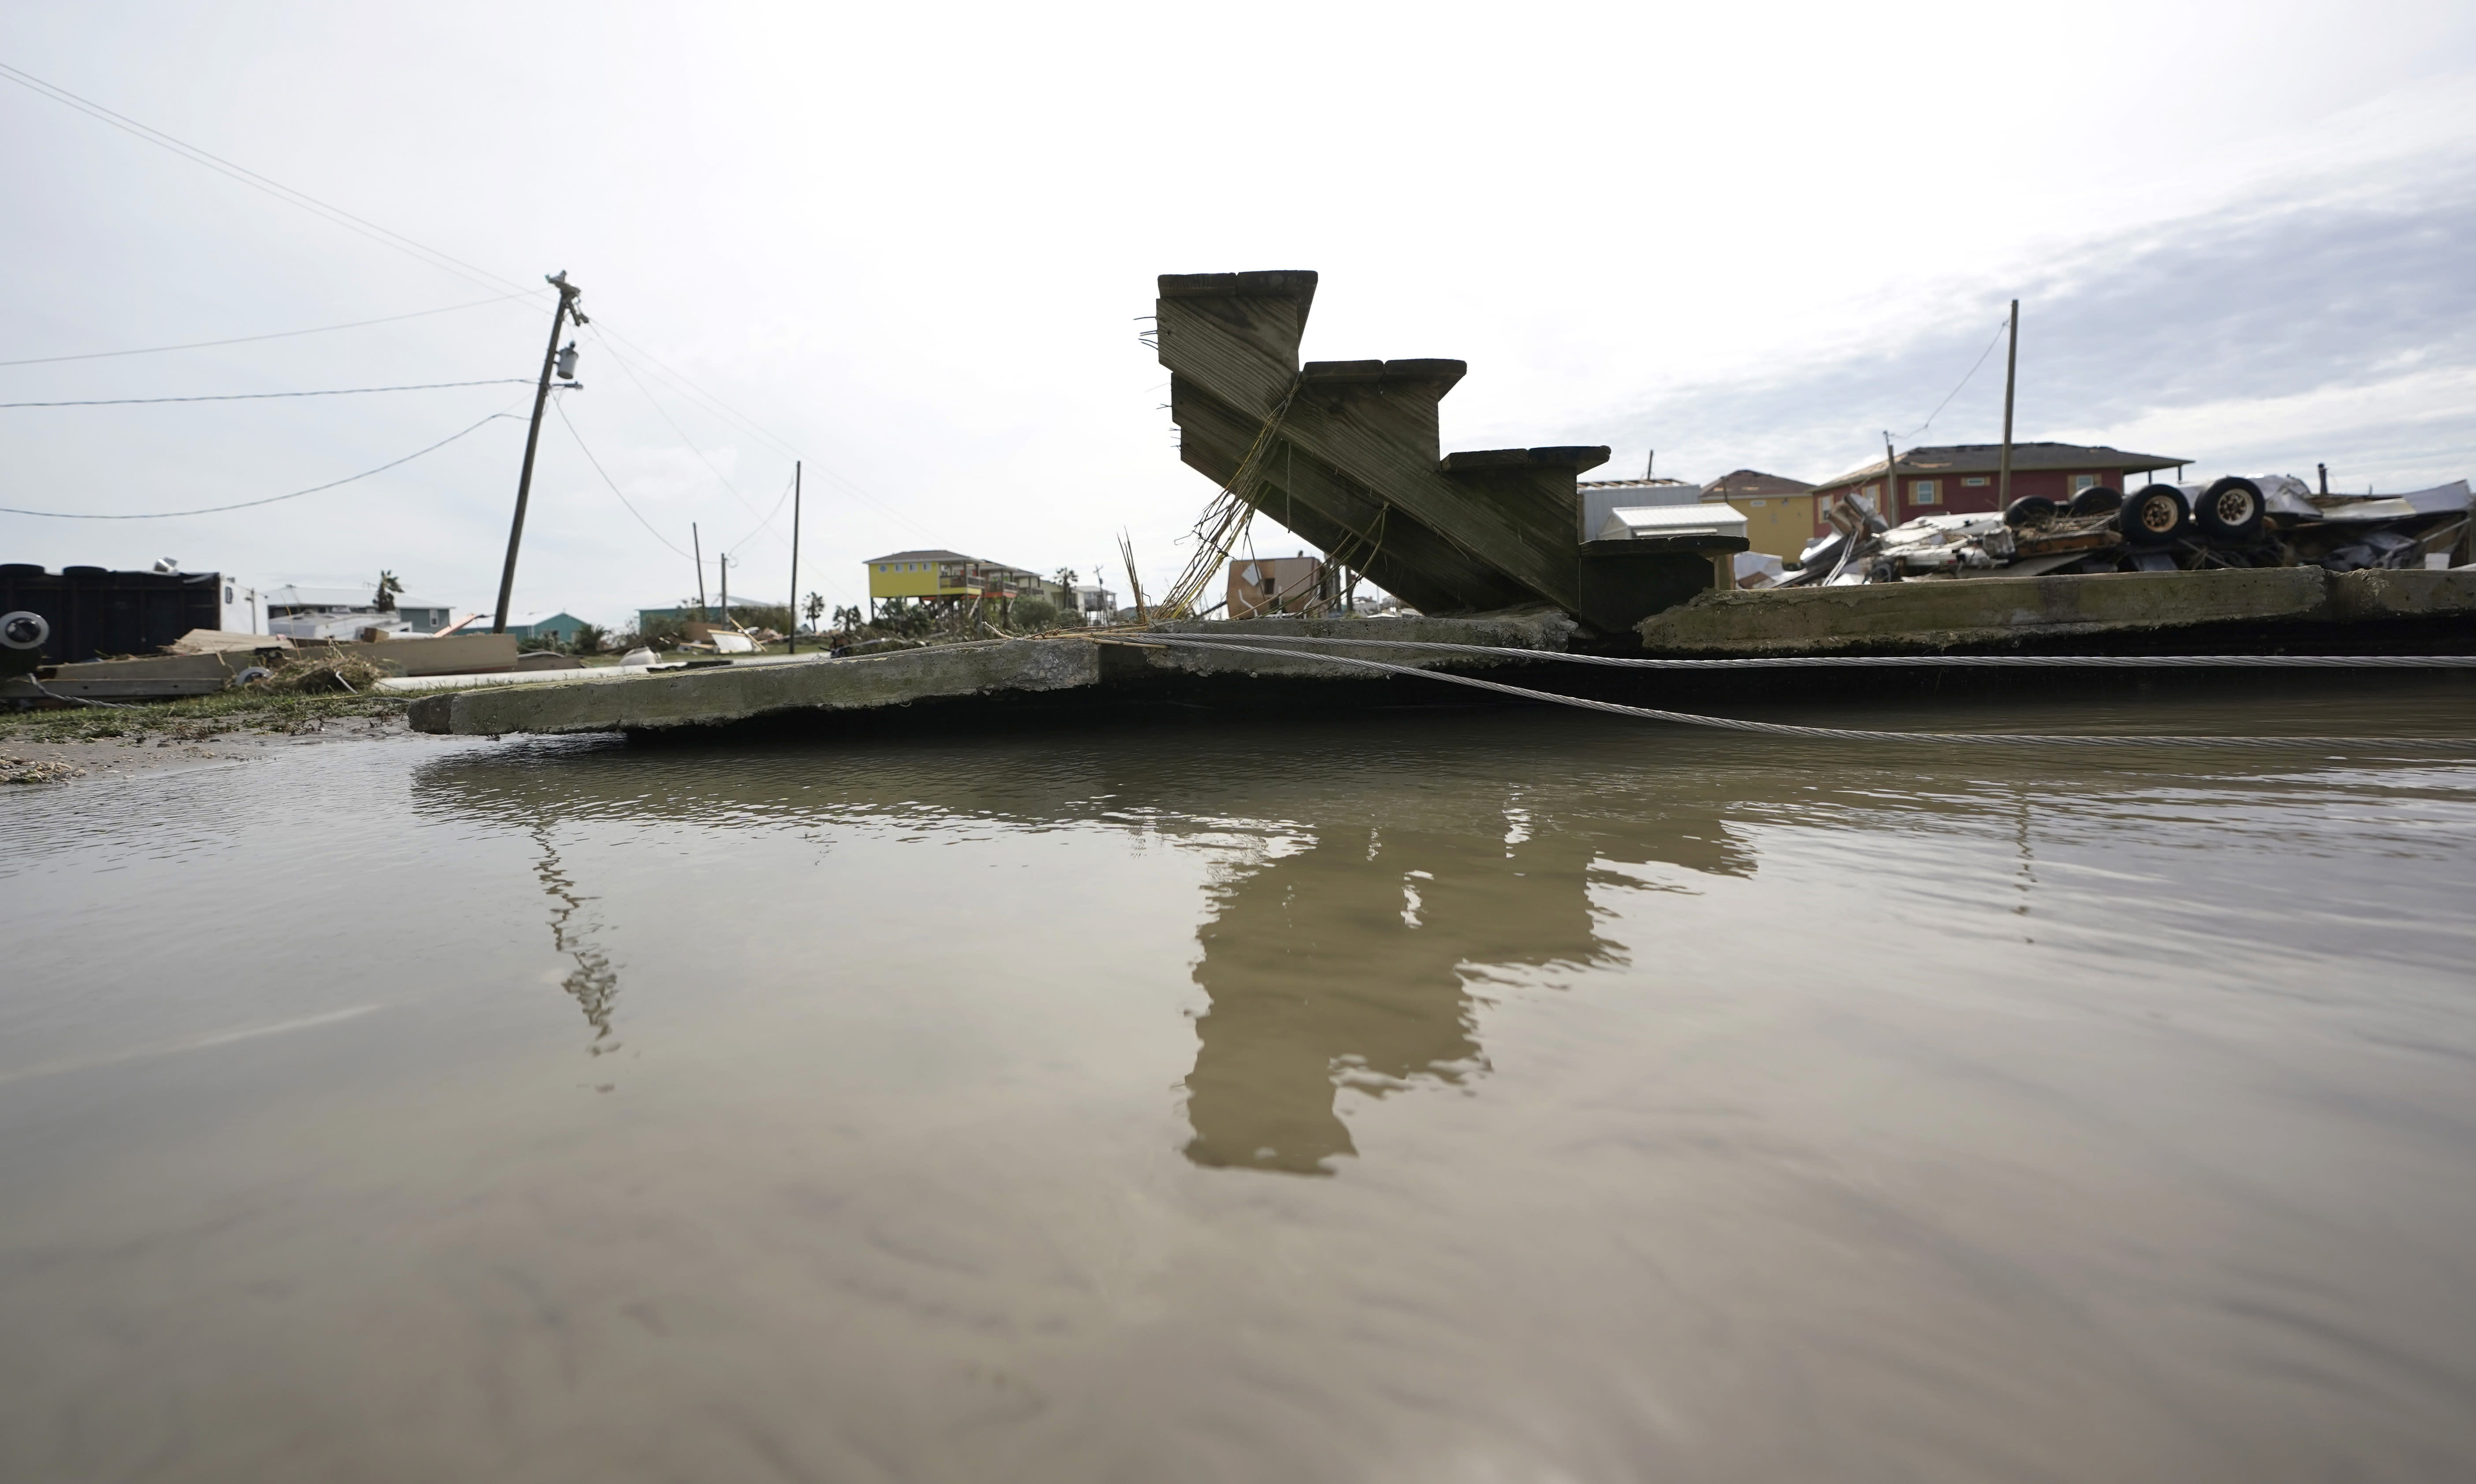 Stair steps and a slab are left behind in the wake of Hurricane Laura, Thursday, Aug. 27, 2020, in Holly Beach, La. (AP Photo/Eric Gay)